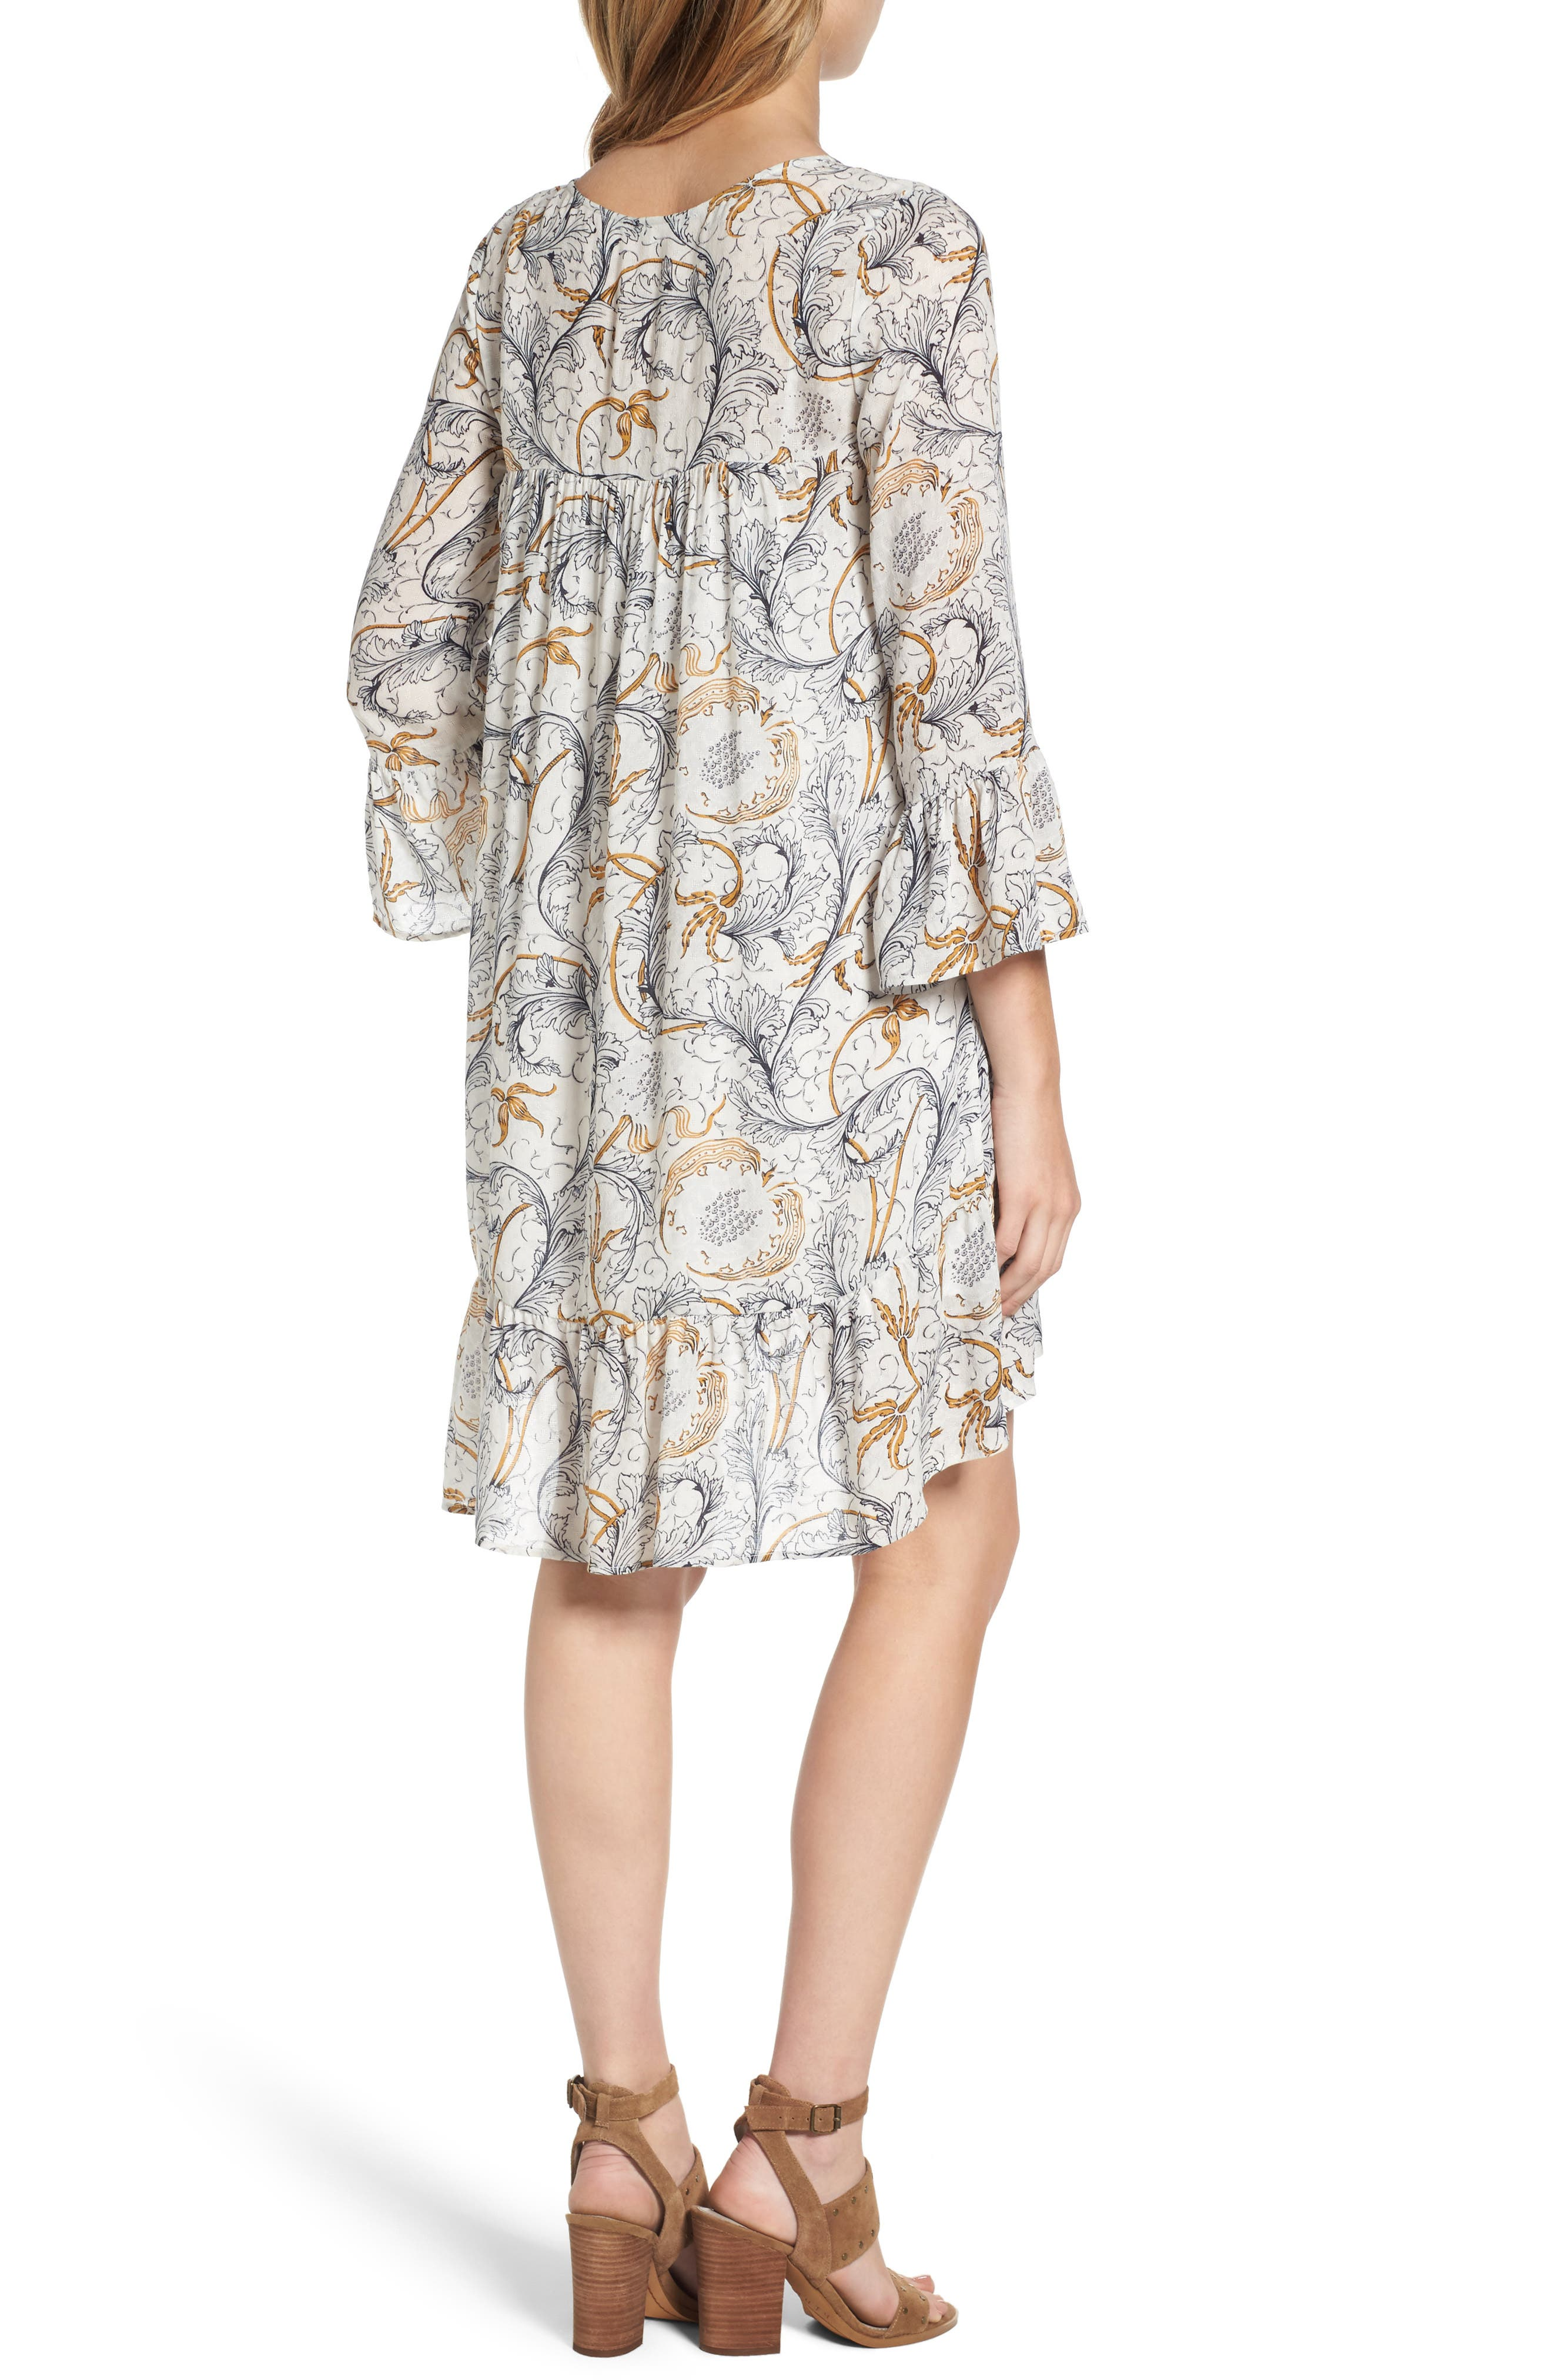 Ruffle Print Dress,                             Alternate thumbnail 2, color,                             Grey Fog Feathered Floral